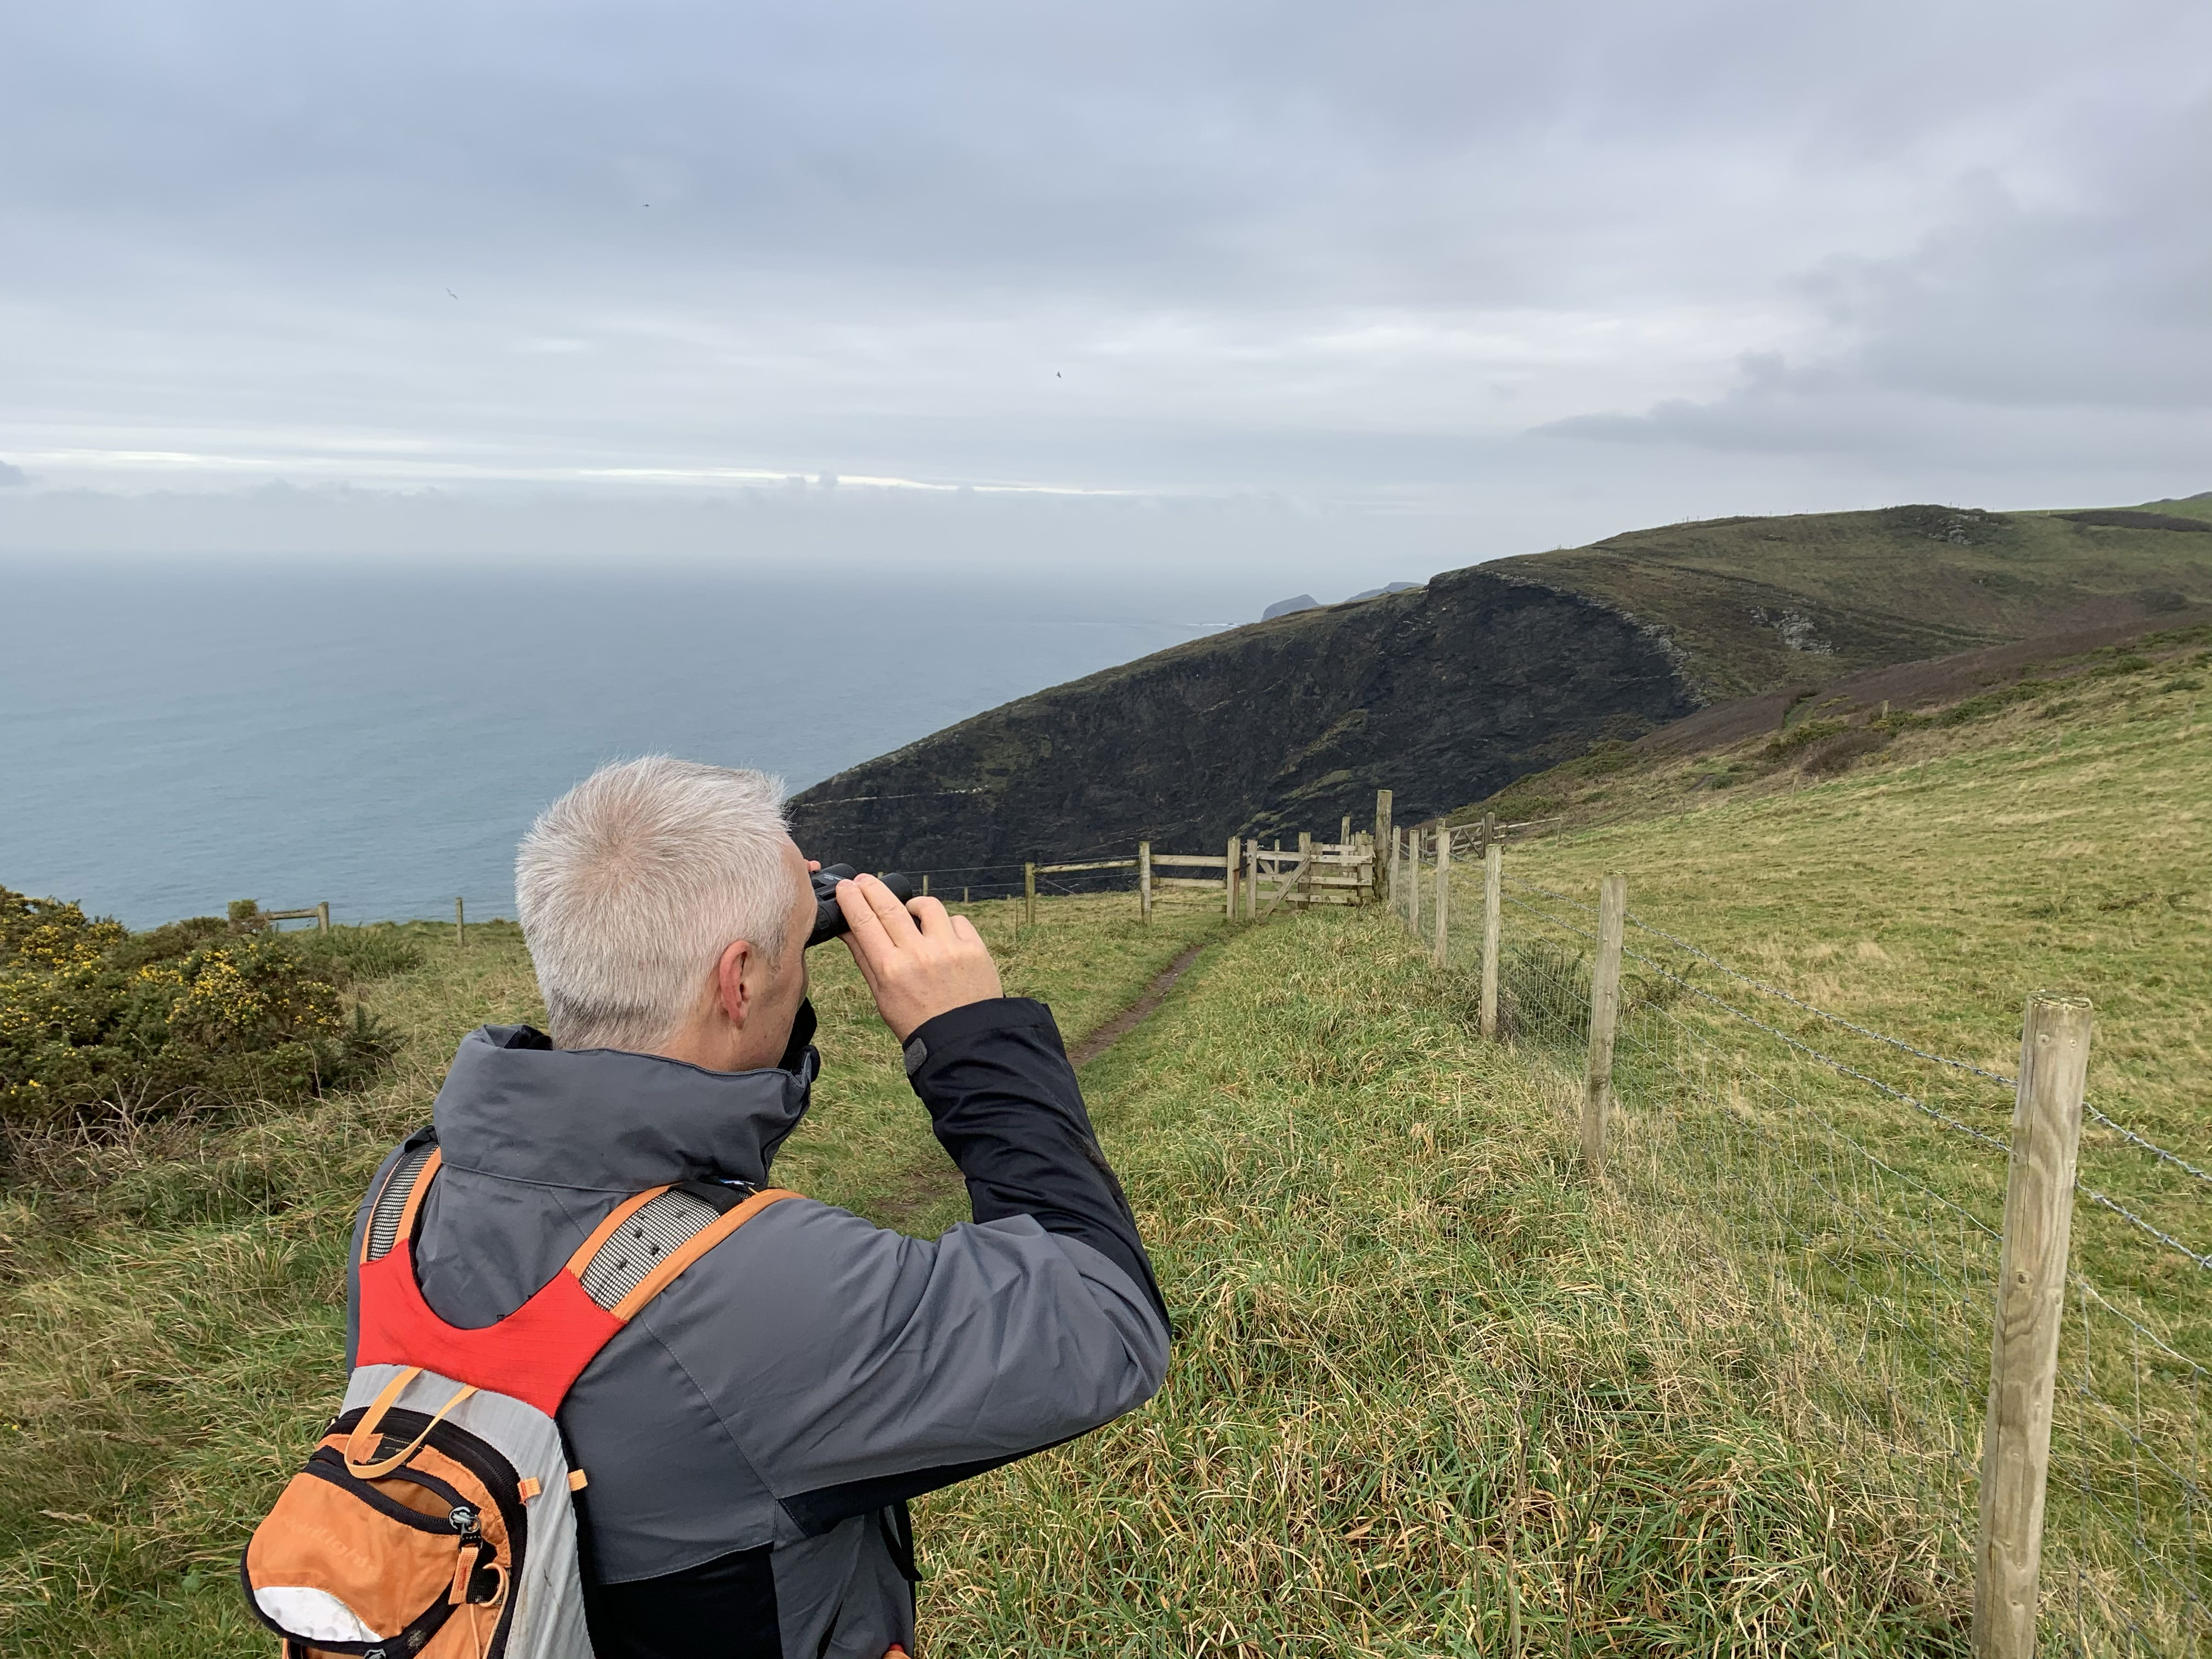 The South West Coast Path walk from Crackington Haven to Boscastle